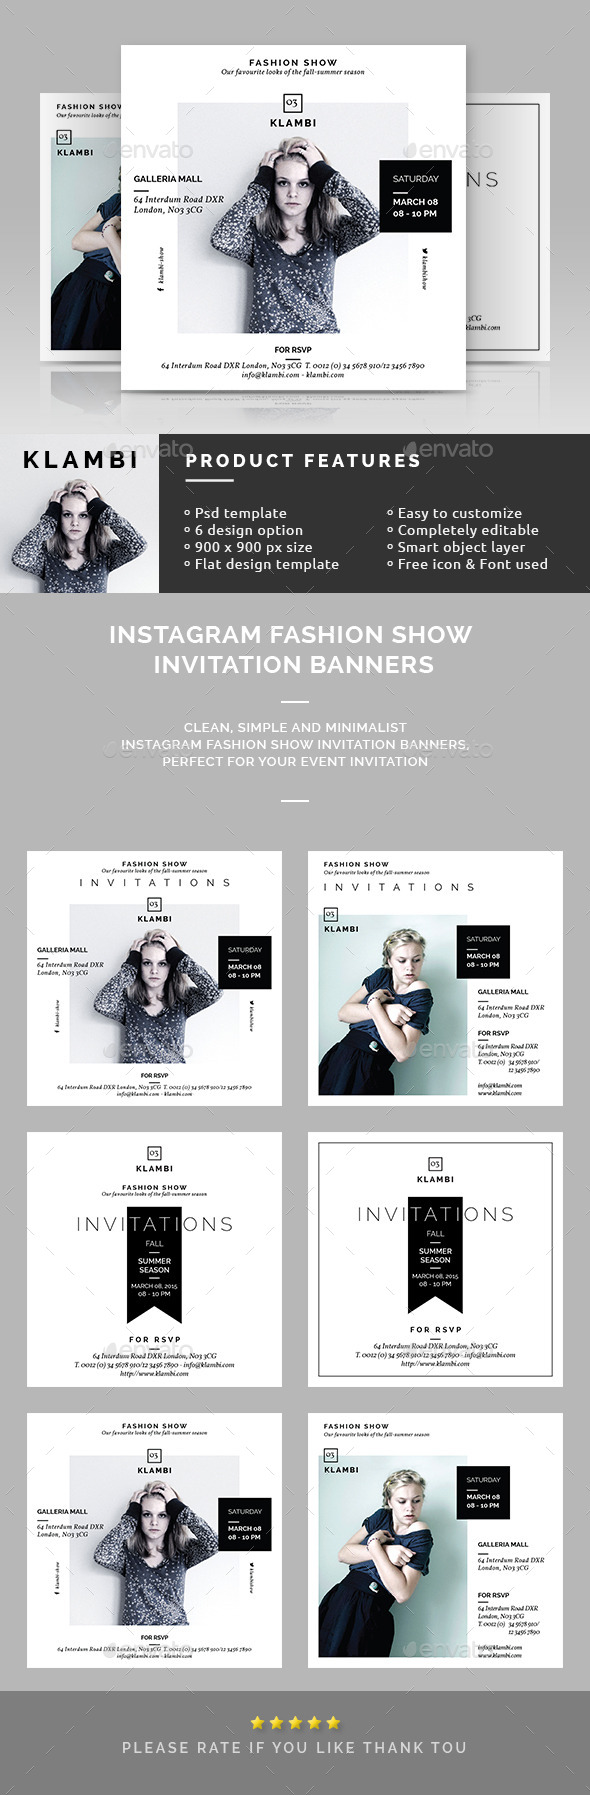 GraphicRiver Instagram Fashion Show Invitation Banners 10641526